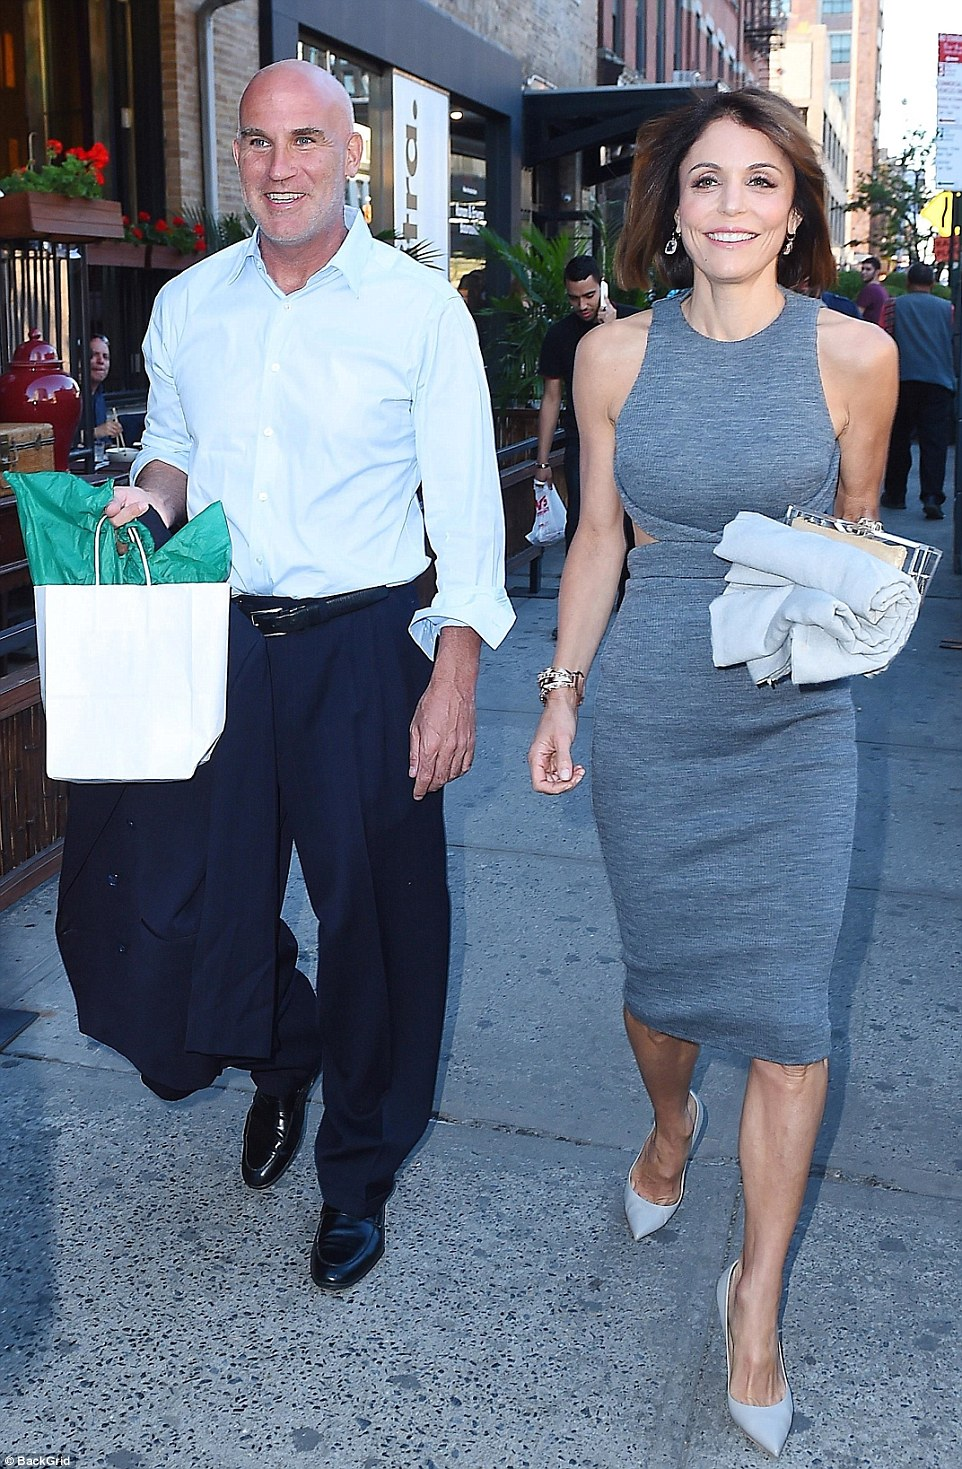 Dennis shields dating bethenny frankel